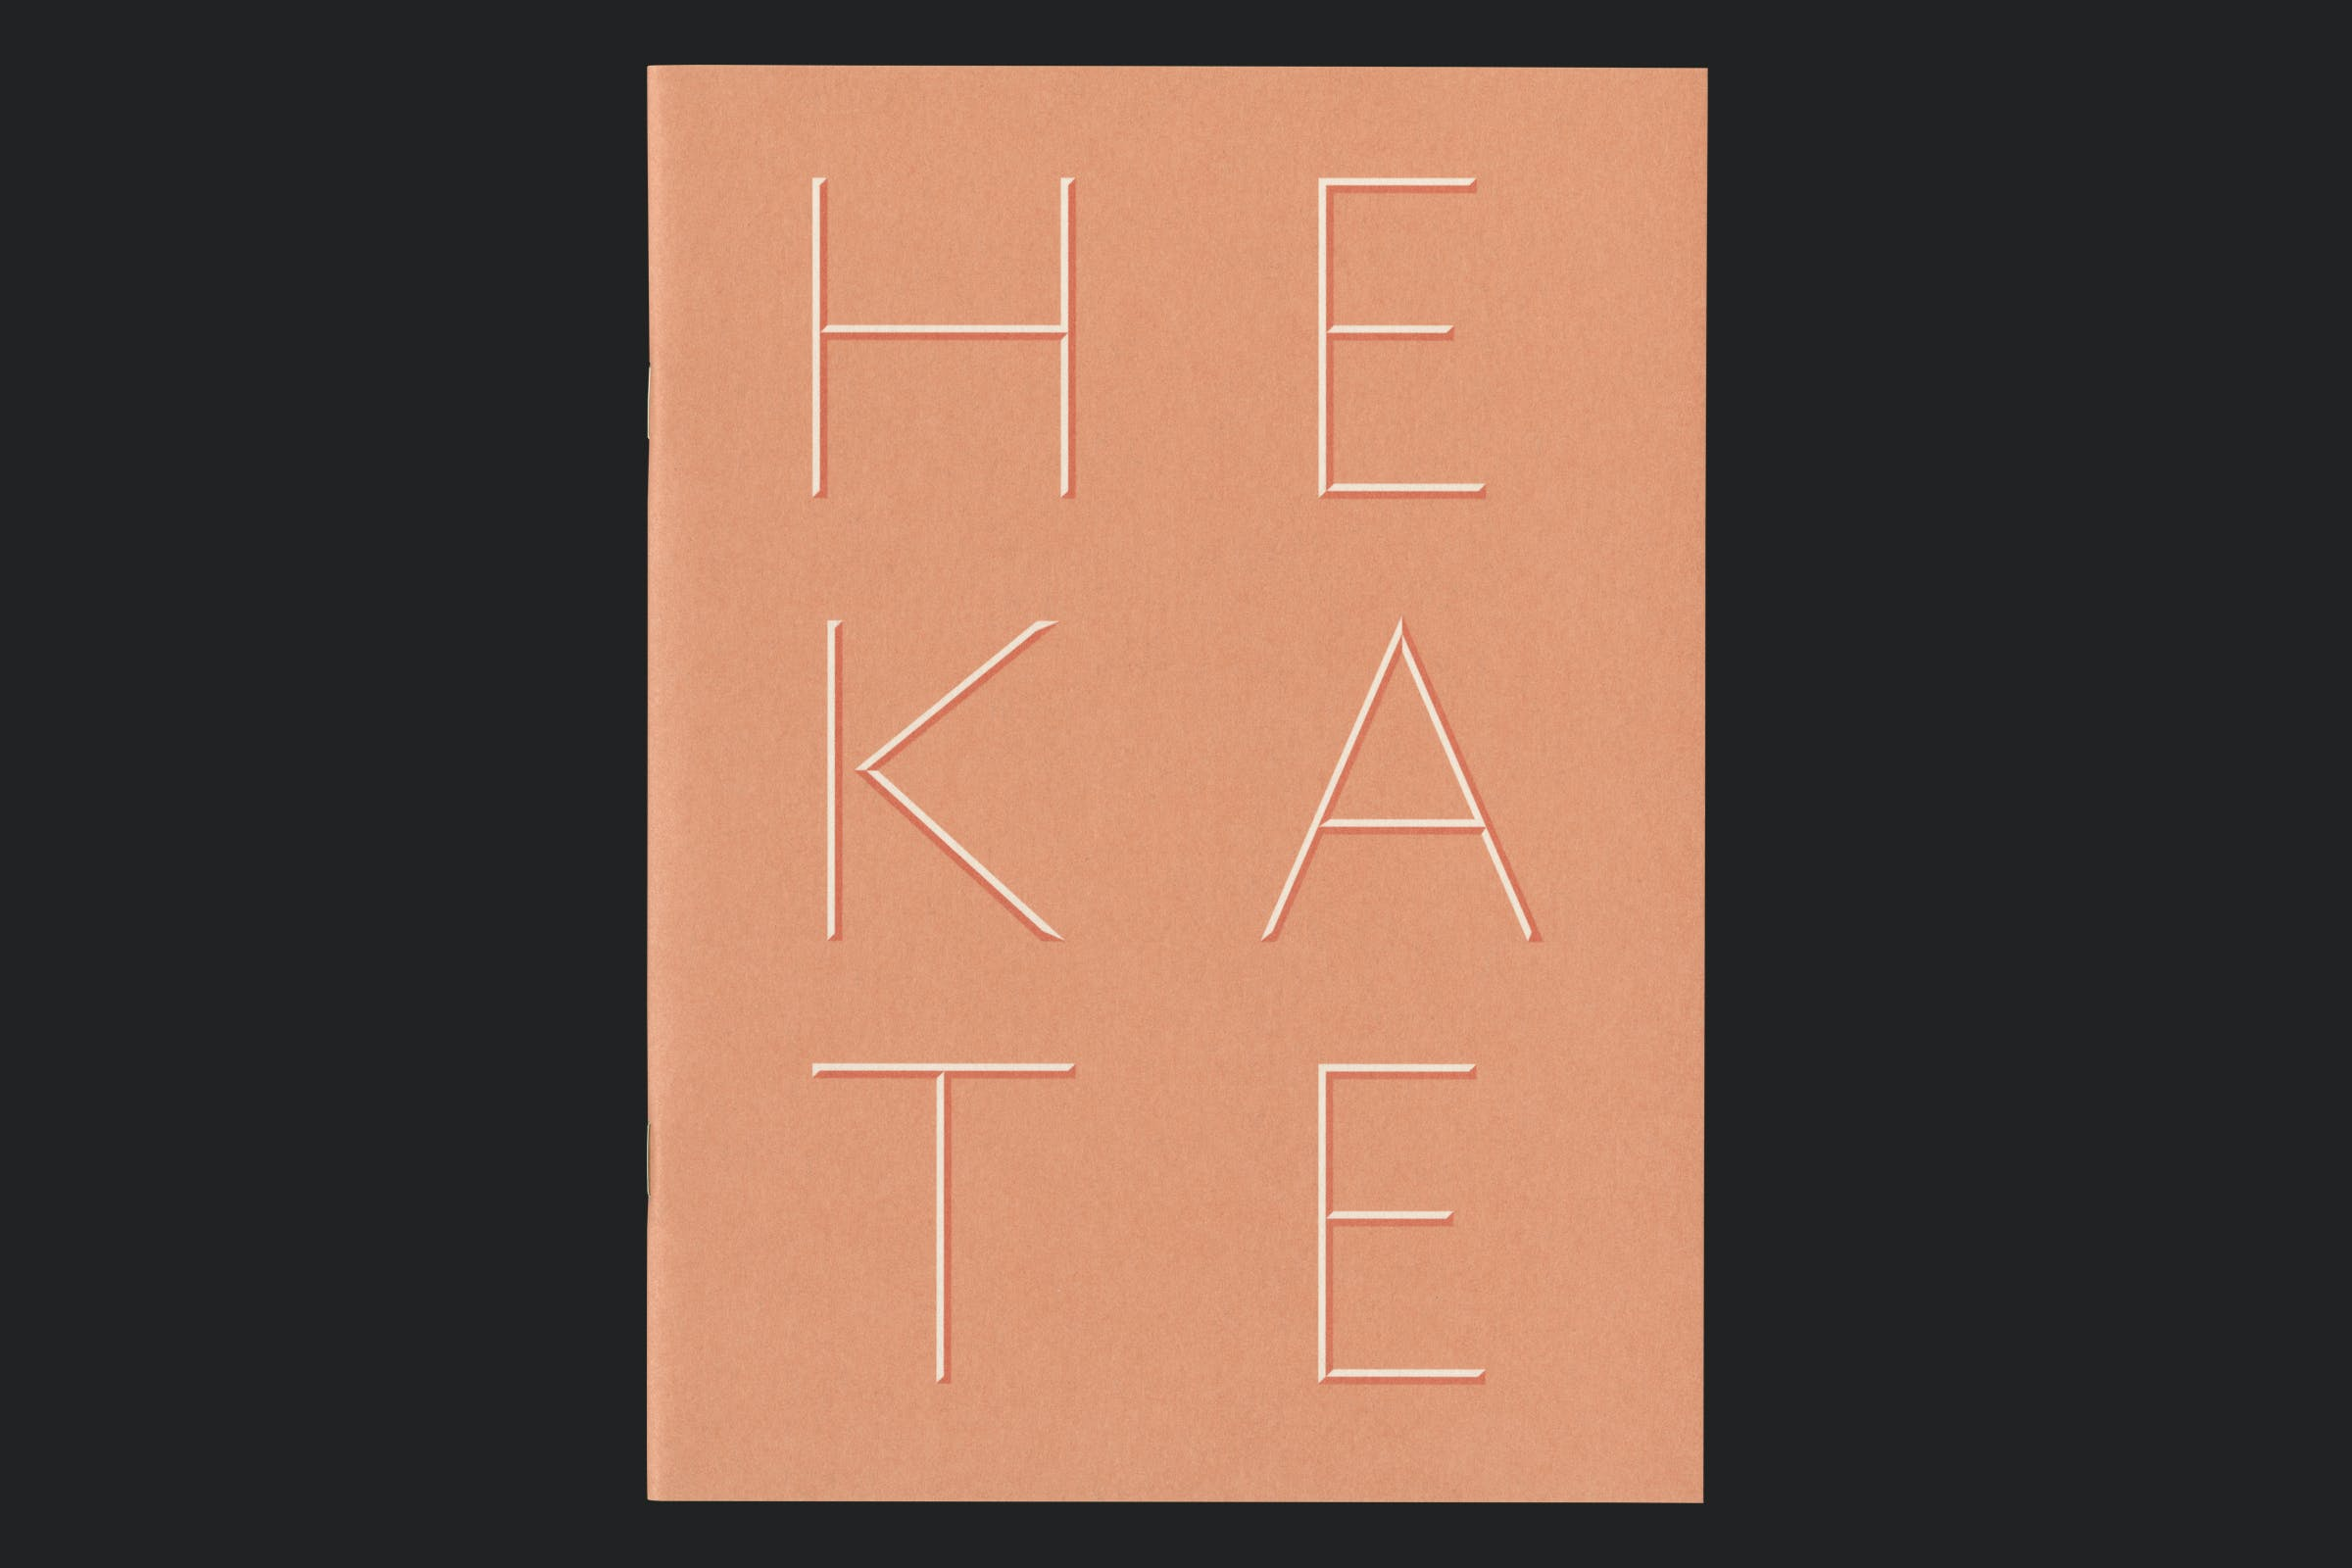 Hollybush Gardens, Claire Hooper: Hekate, Hekate, Print, Graphic Design by Wolfe Hall